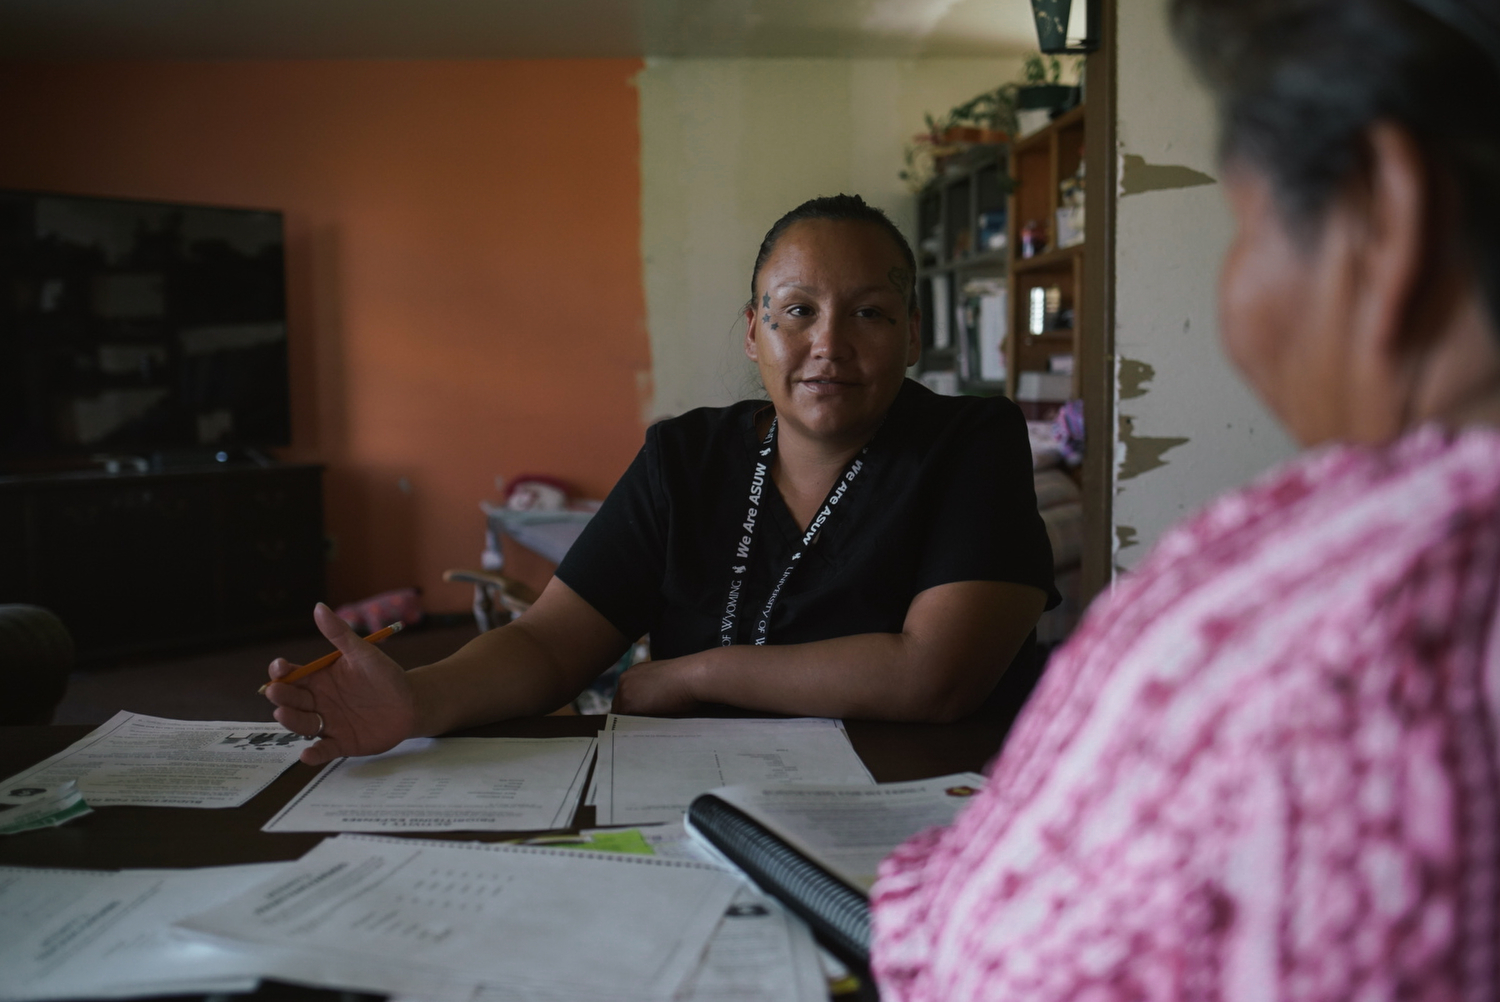 Desirae goes over budgeting worksheets with Elsie Charging Crow, a home educator with Wind River's Family Spirit home visiting program. Elsie, an elder on the Wind River Indian Reservation, teaches parents in the program about healthy child development, life skills, and Northern Arapaho traditions around parenting.